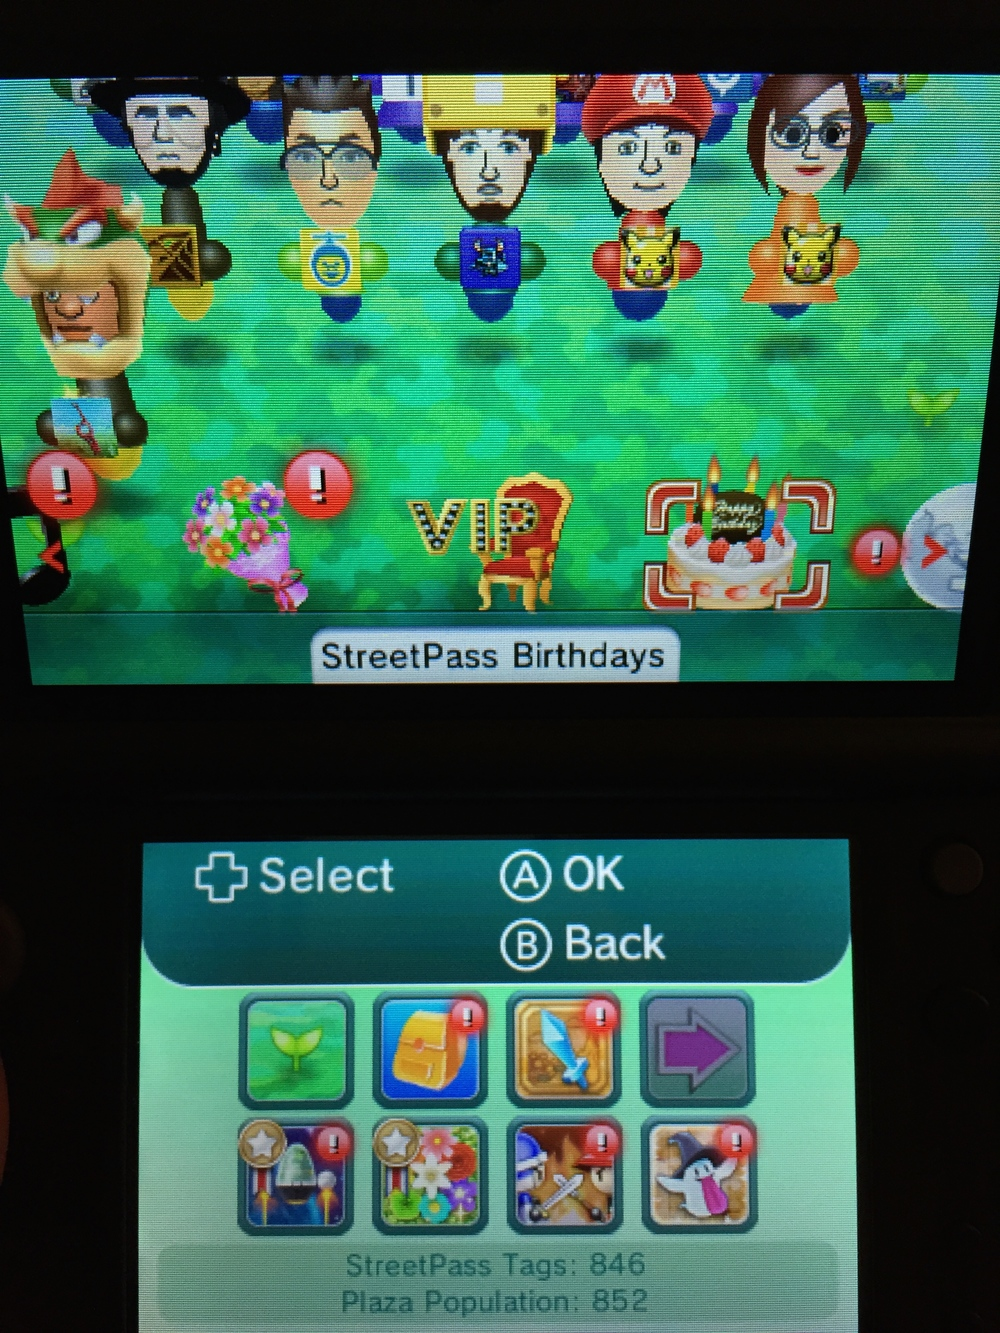 streetpass_mii_plaza_birthdays.jpg